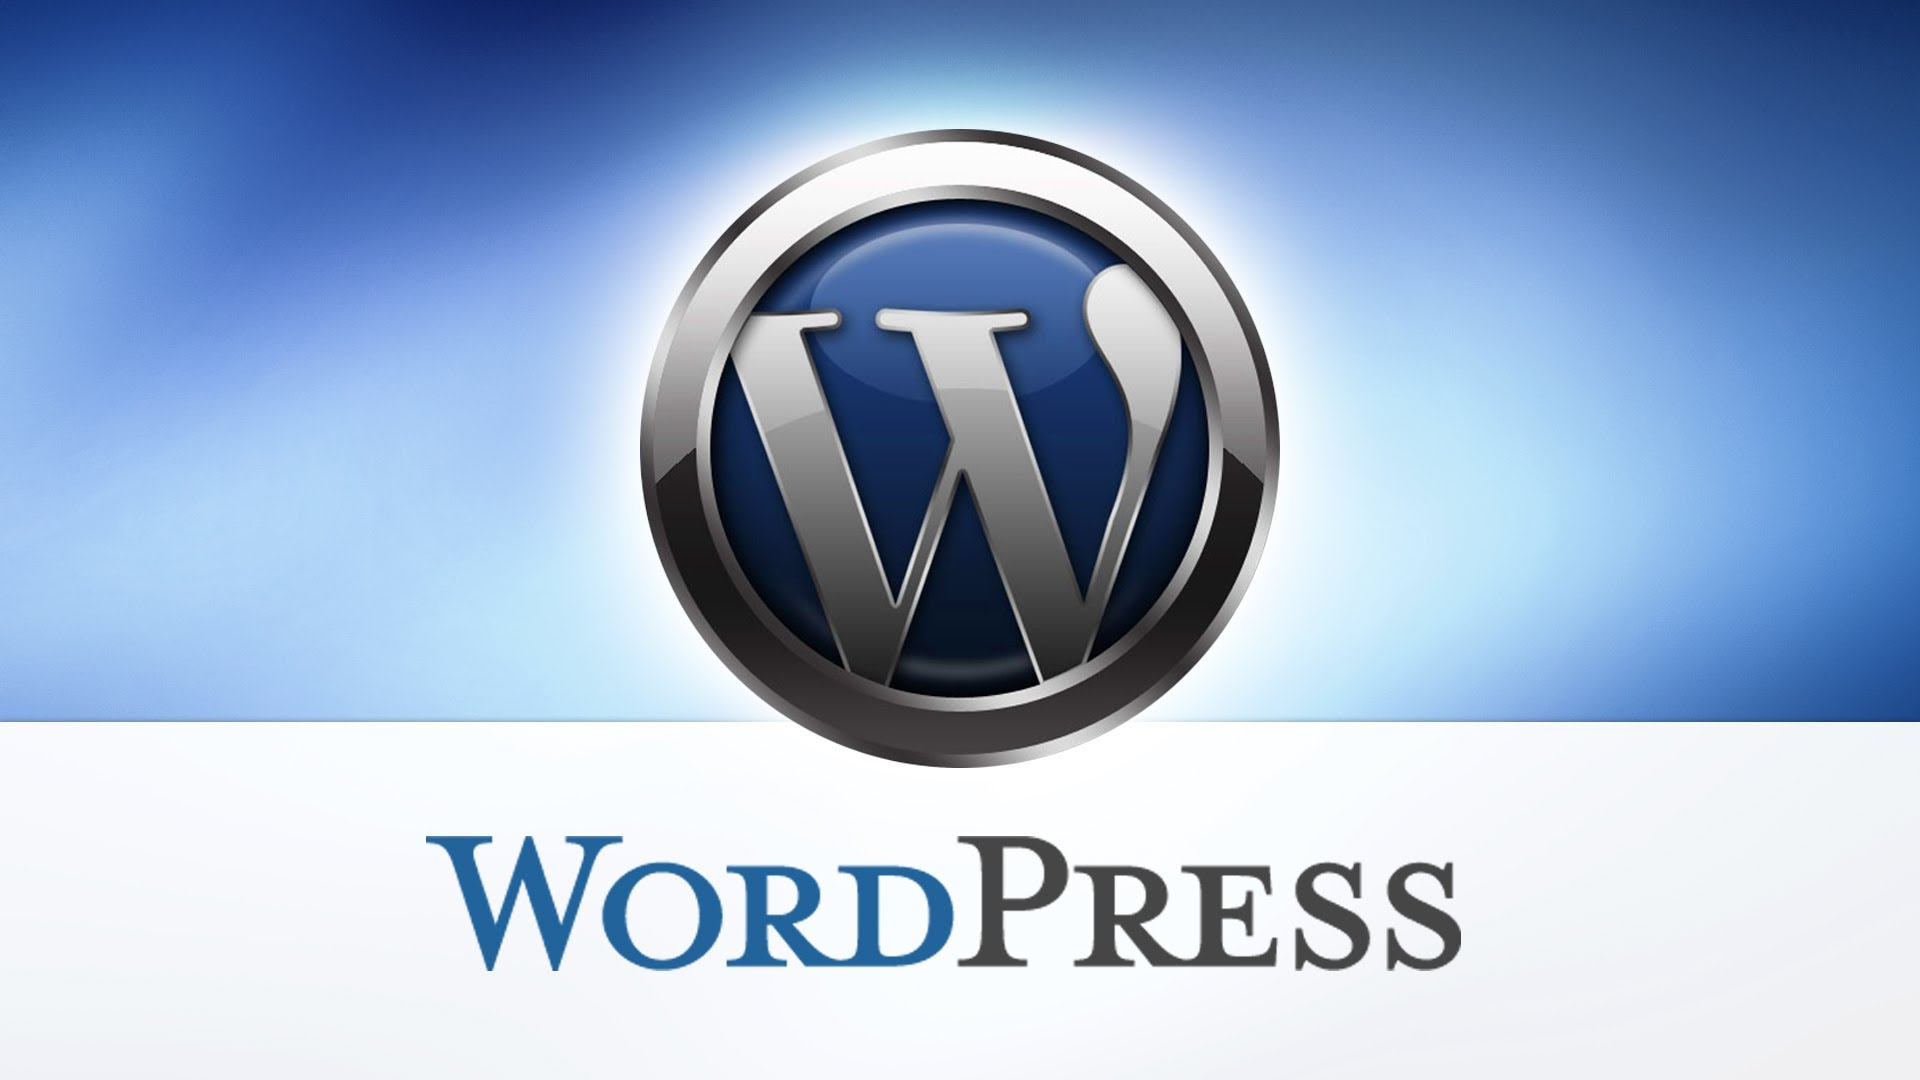 Importance of WordPress